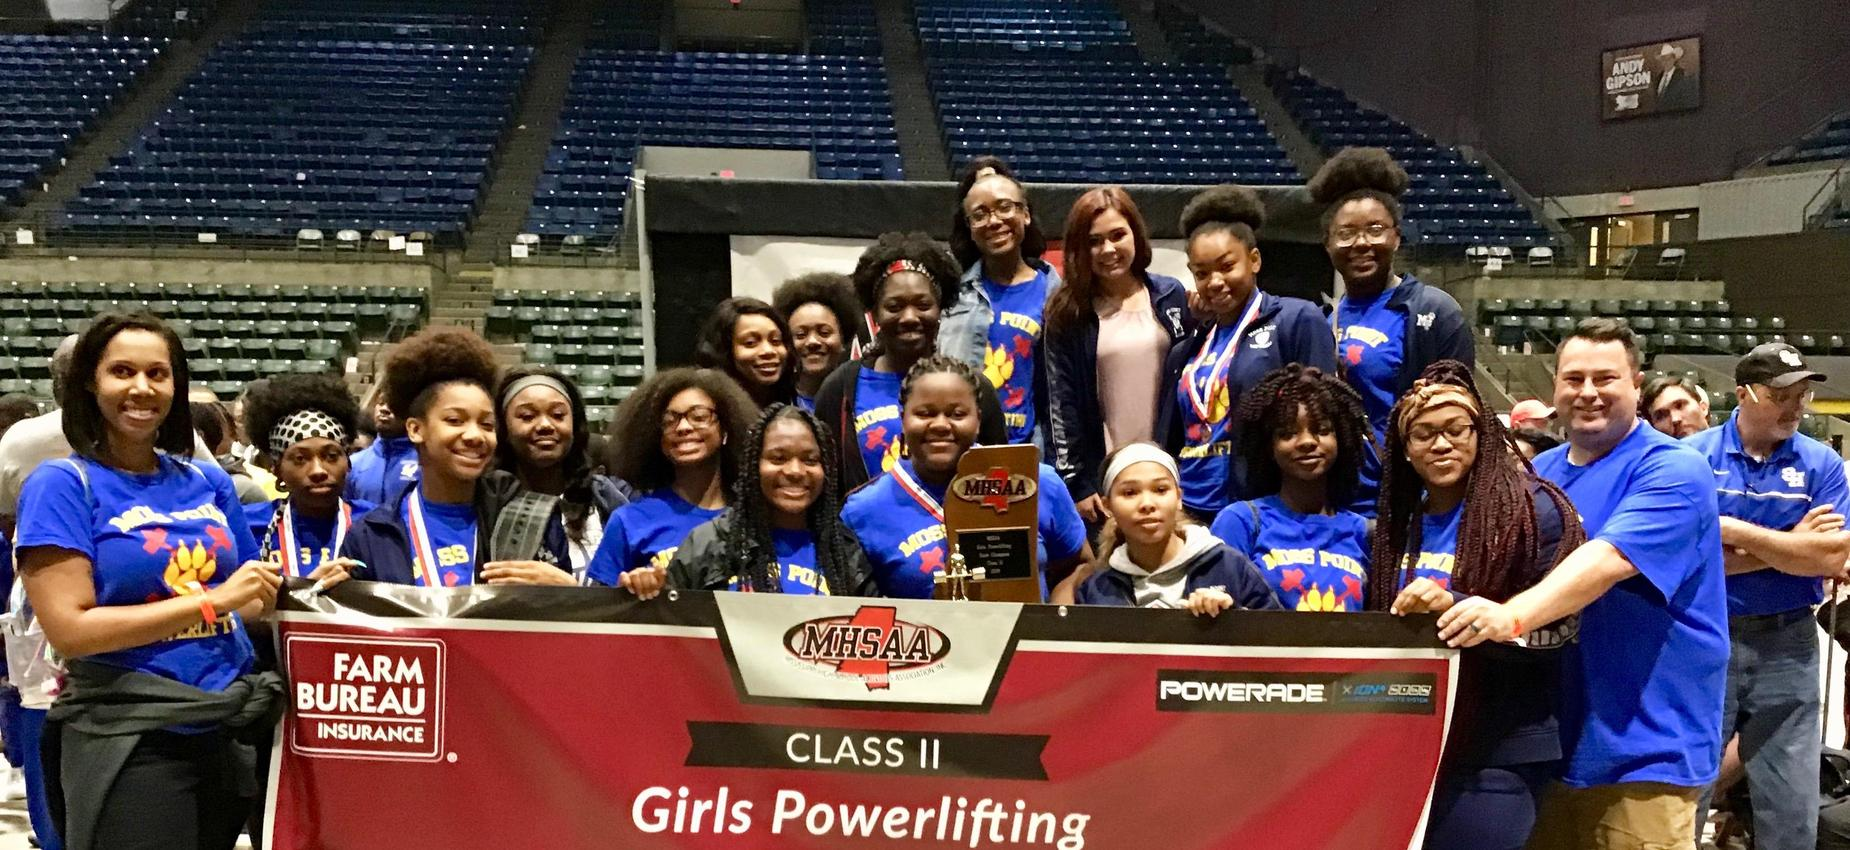 girls powerlifting state champions group picture